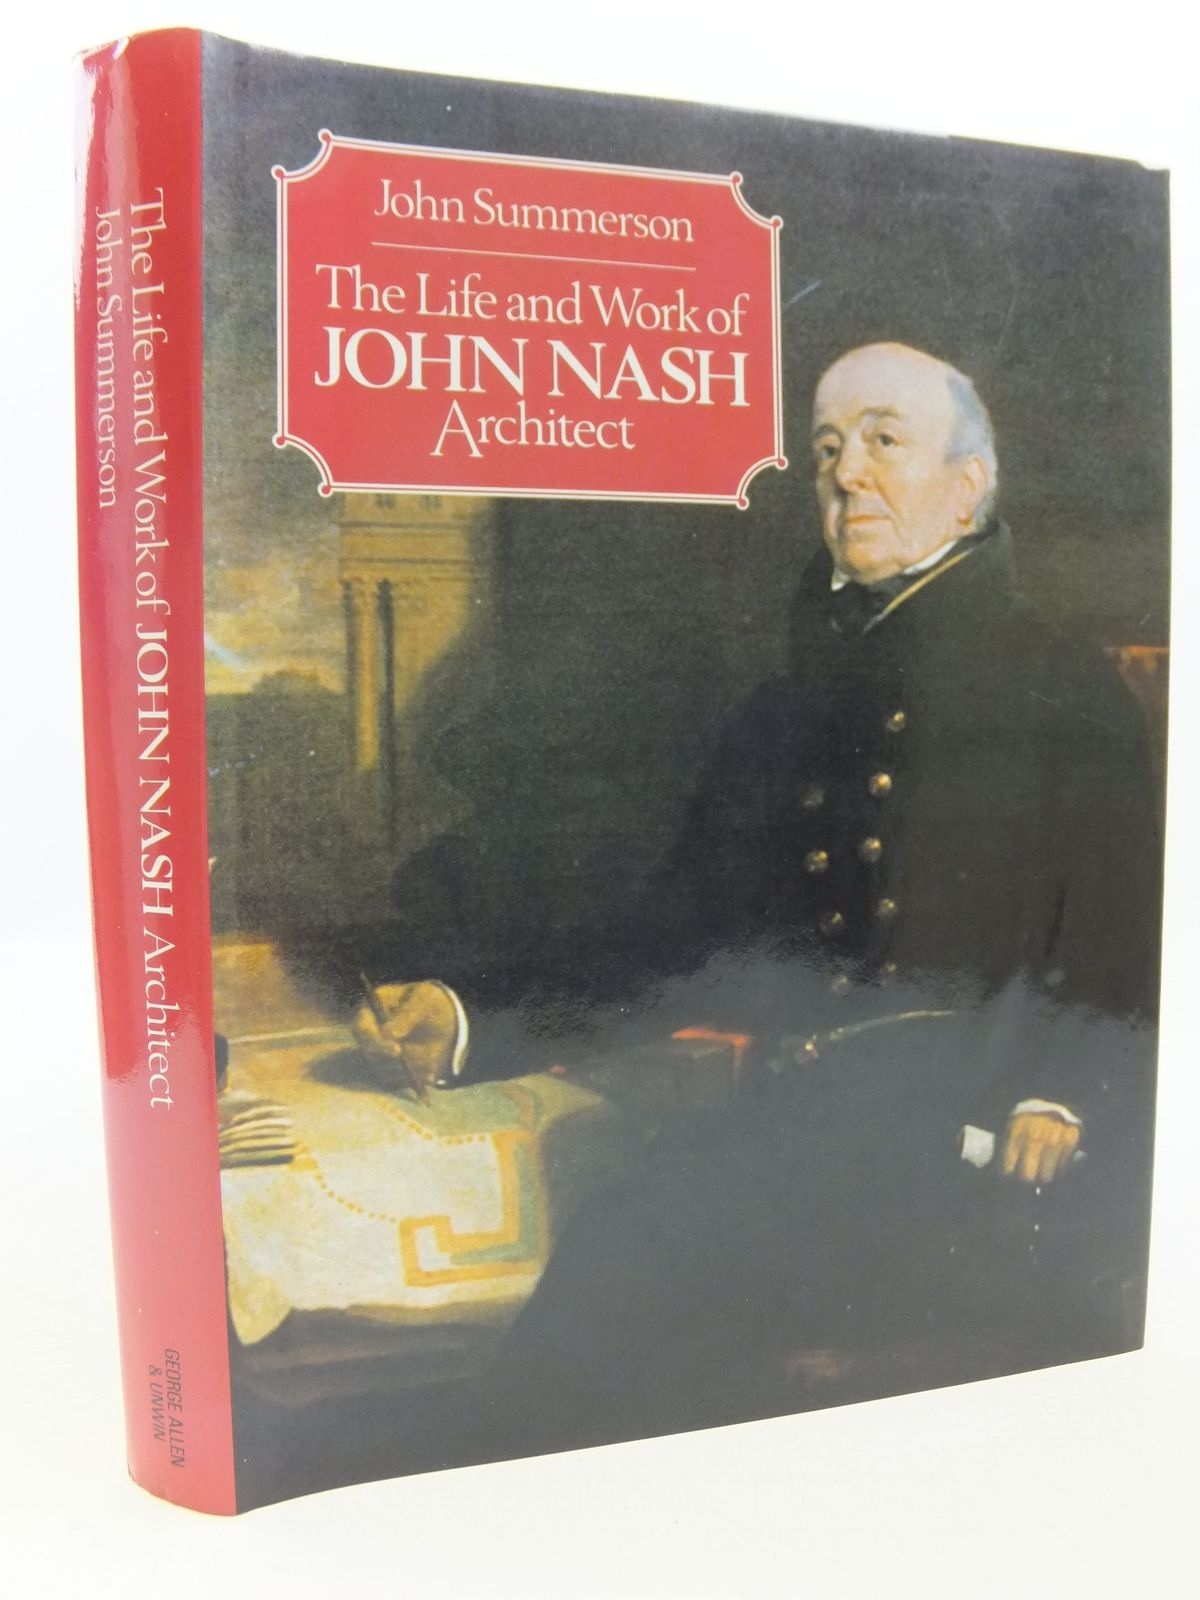 Photo of THE LIFE AND WORK OF JOHN NASH ARCHITECT written by Summerson, John published by George Allen & Unwin (STOCK CODE: 2112205)  for sale by Stella & Rose's Books